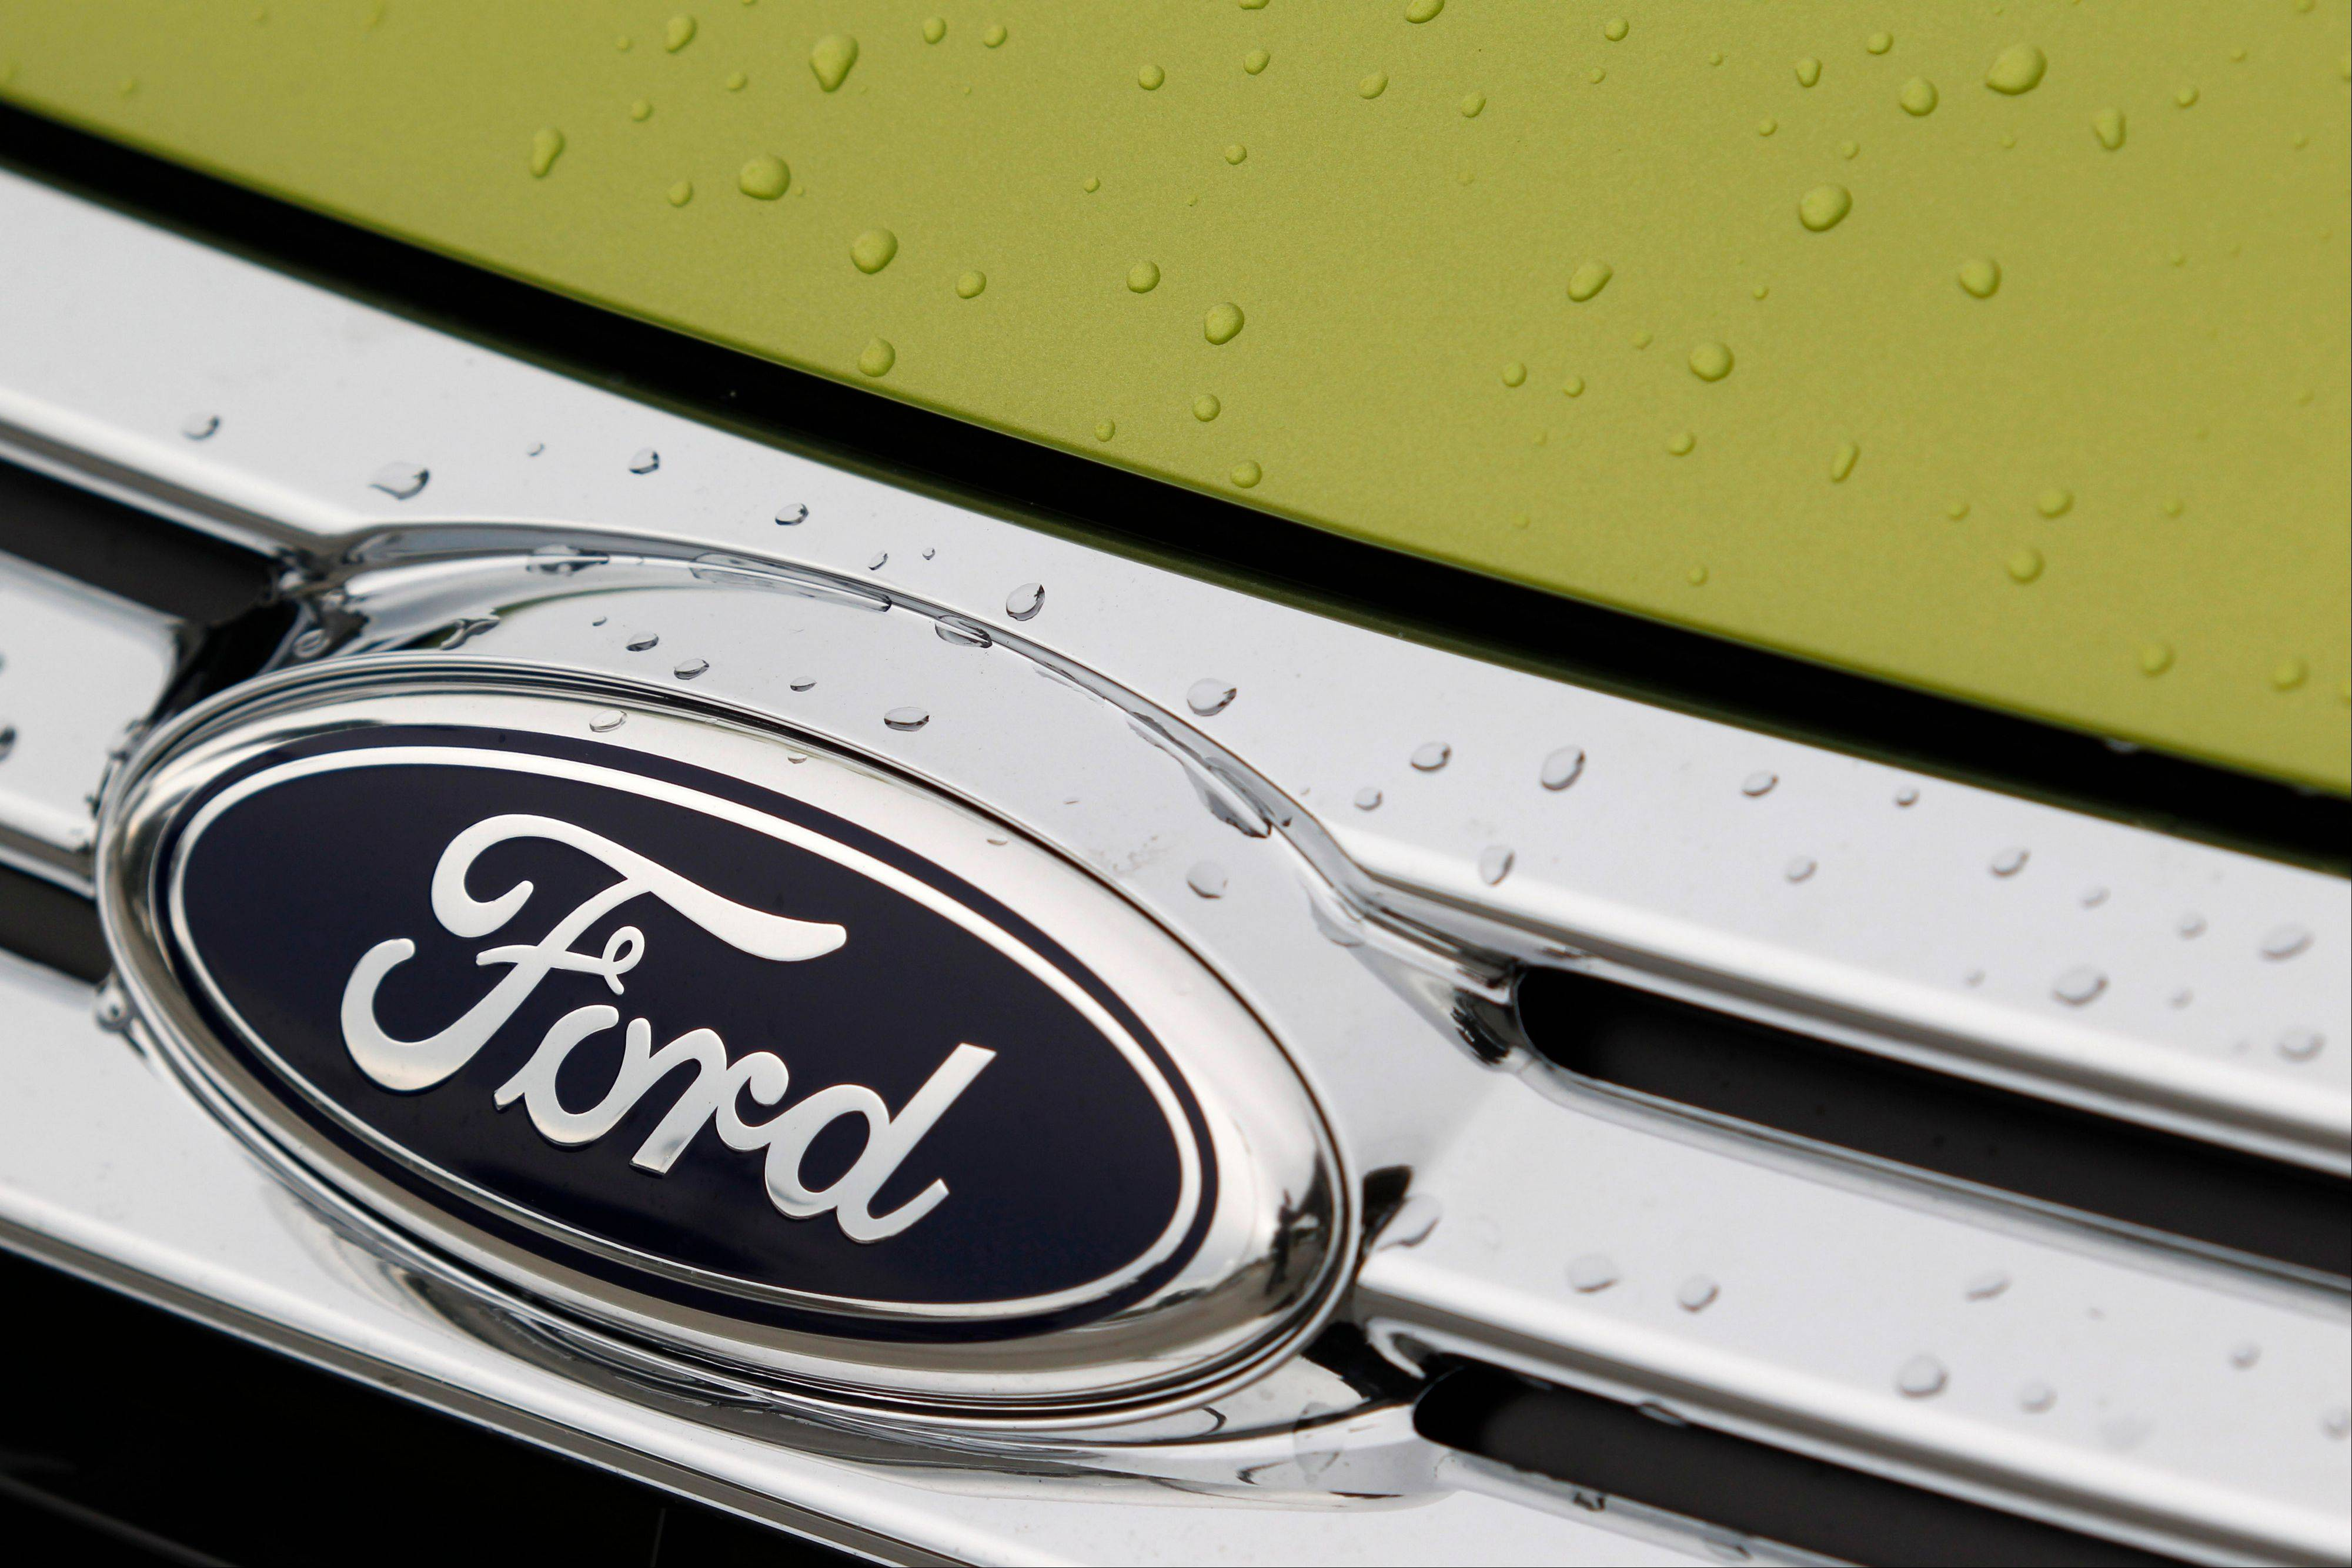 Ford�s profit fell 57 percent in the second quarter as losses in Europe and Asia swamped a healthy performance in North America.